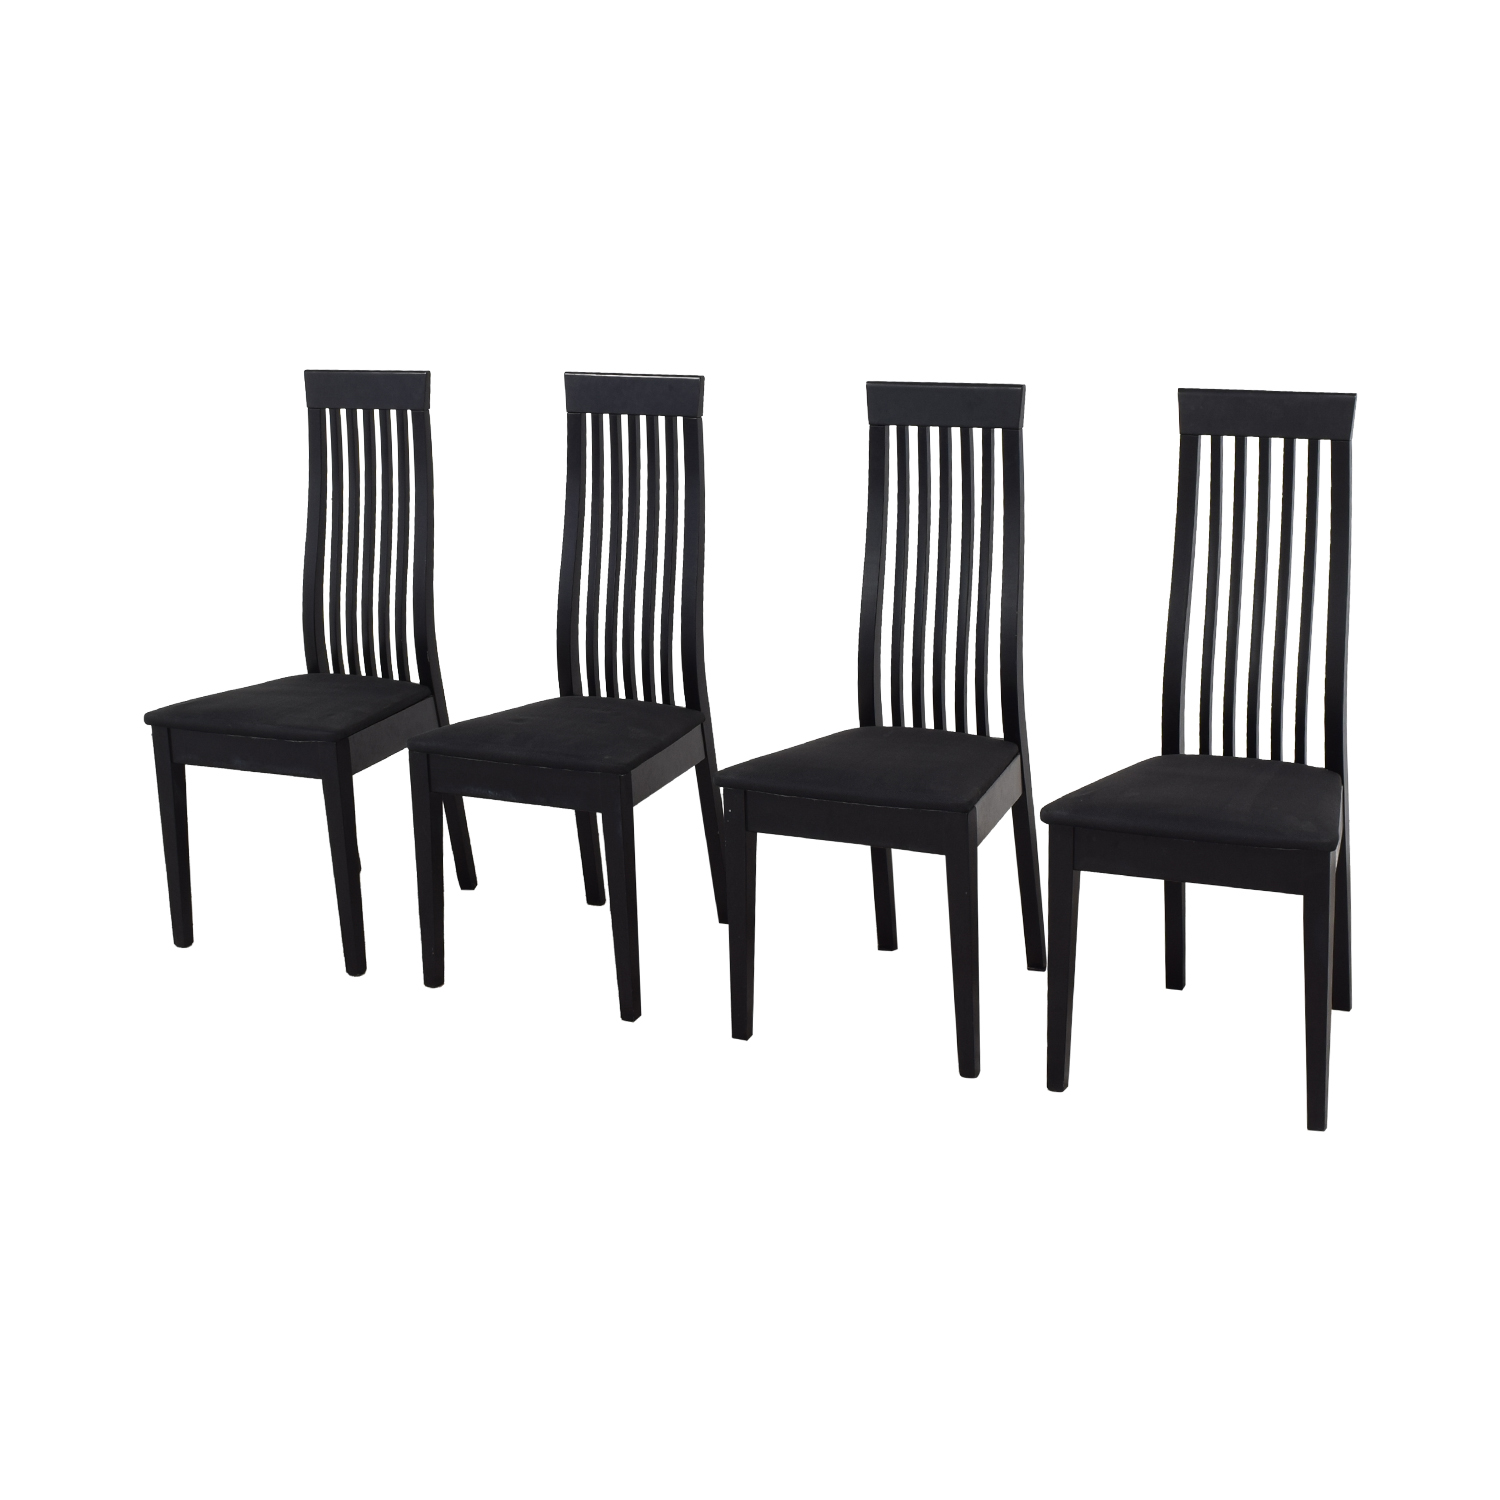 shop Calligaris Upholstered Dining Chairs Calligaris Dining Chairs